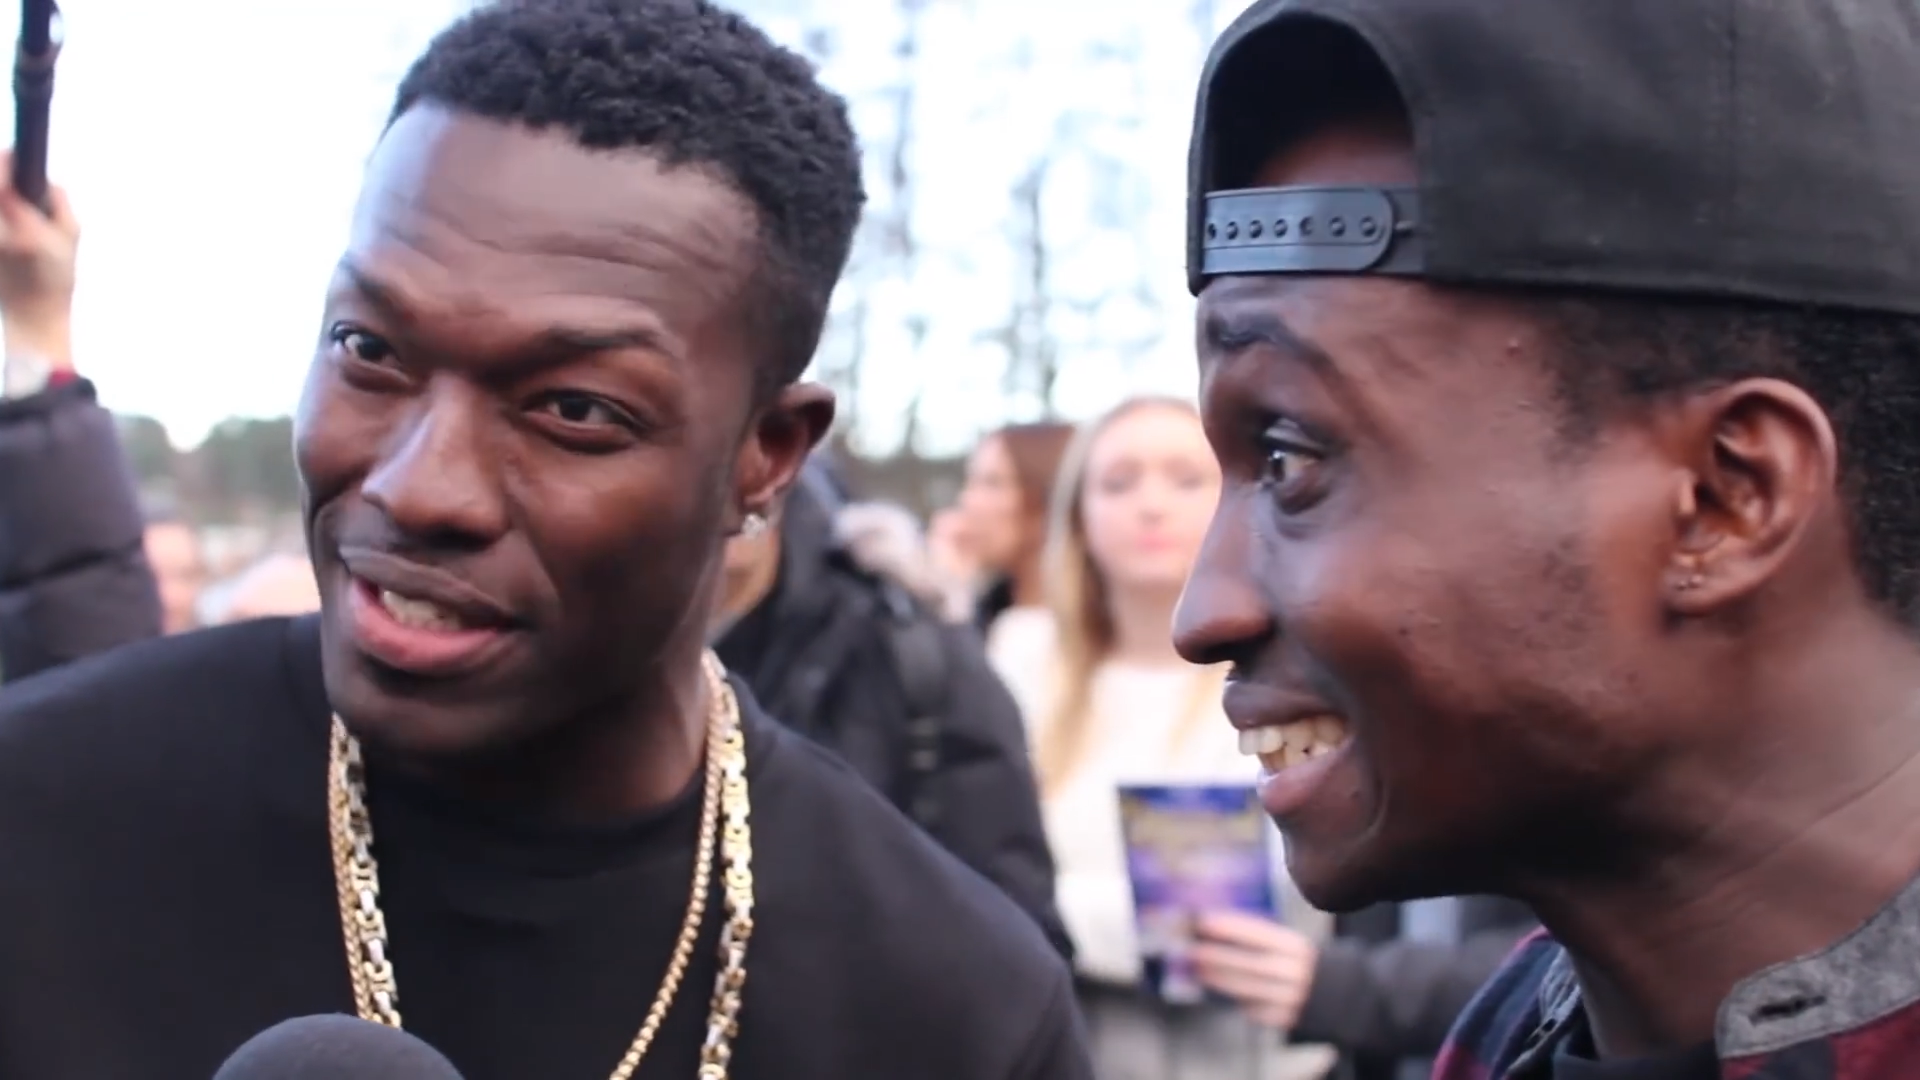 Reggie and Bollie, XFactor hopefuls are interviewed by Eagle Radio in Farnborough